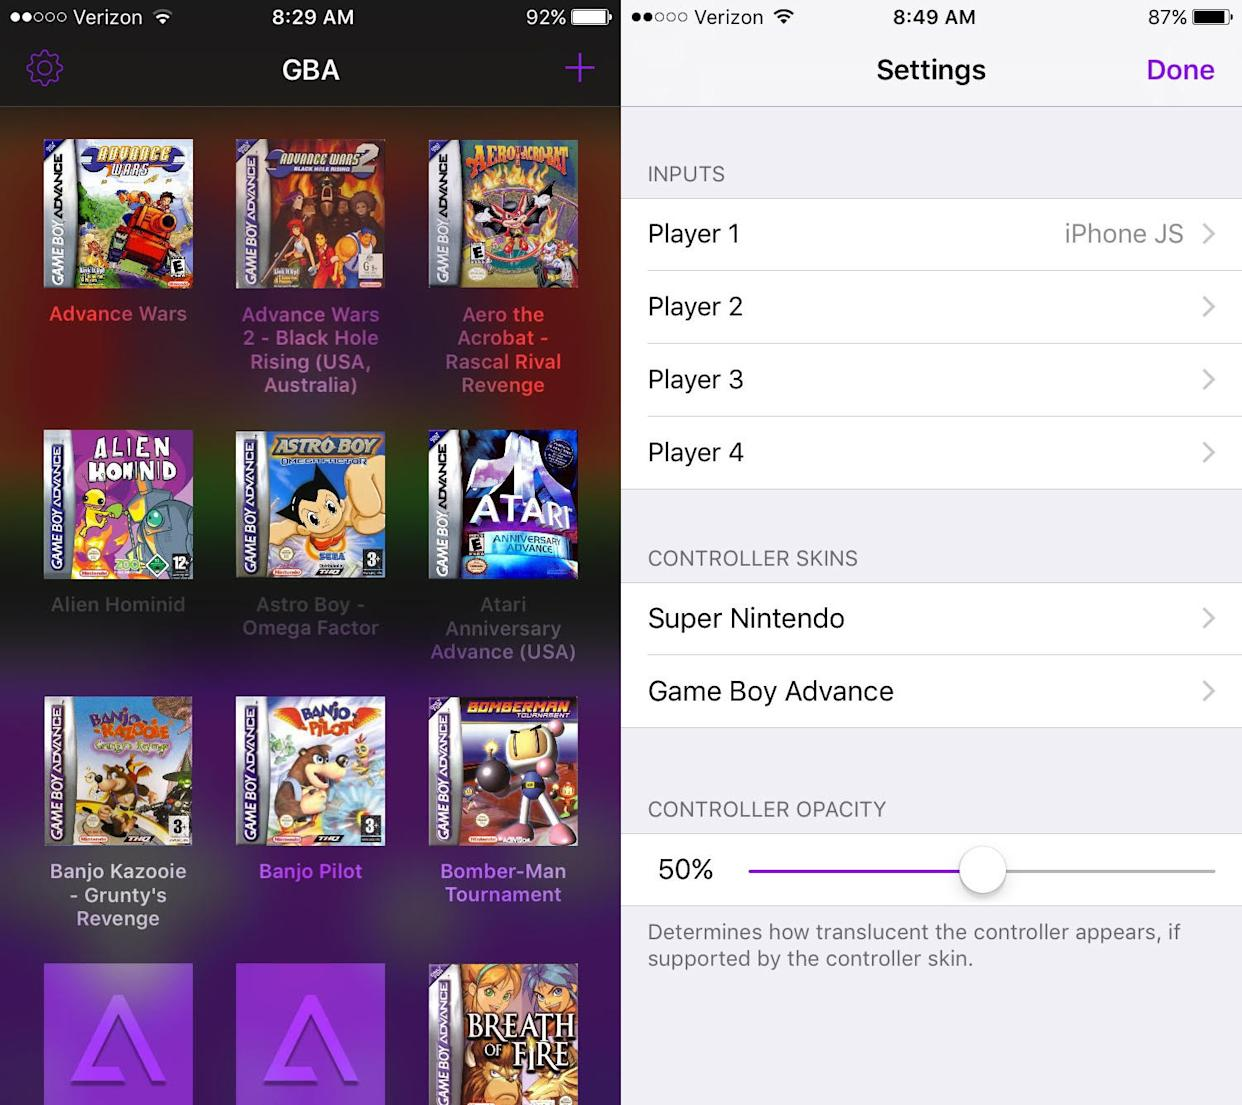 Delta emulator brings Nintendo games to your iPhone without